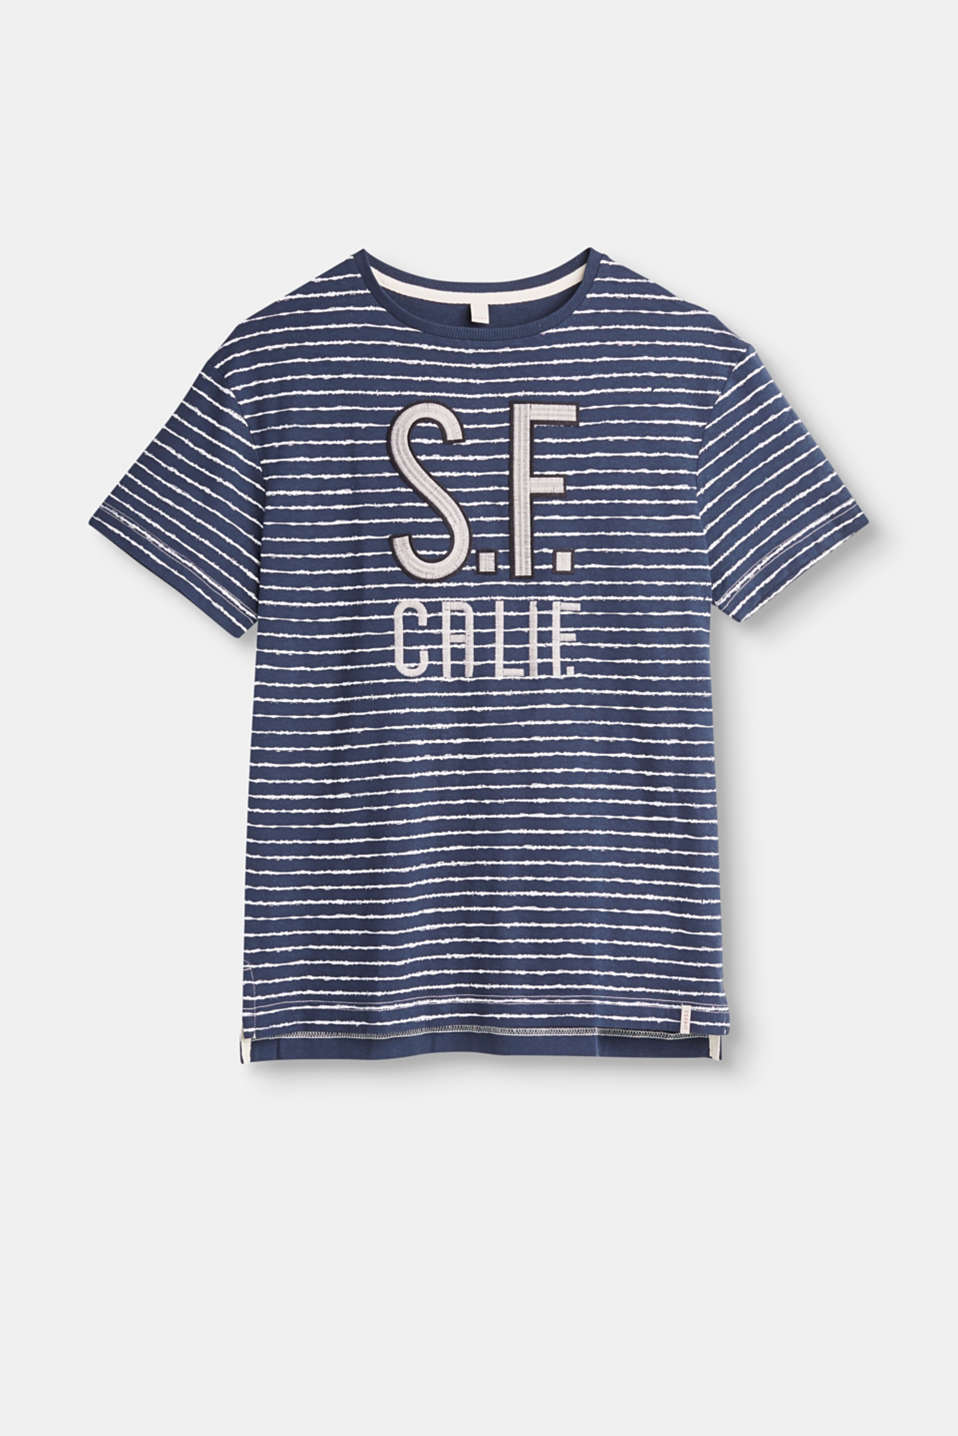 San Francisco, California – the birth place of ESPRIT! Shown as striking stitching on this top!